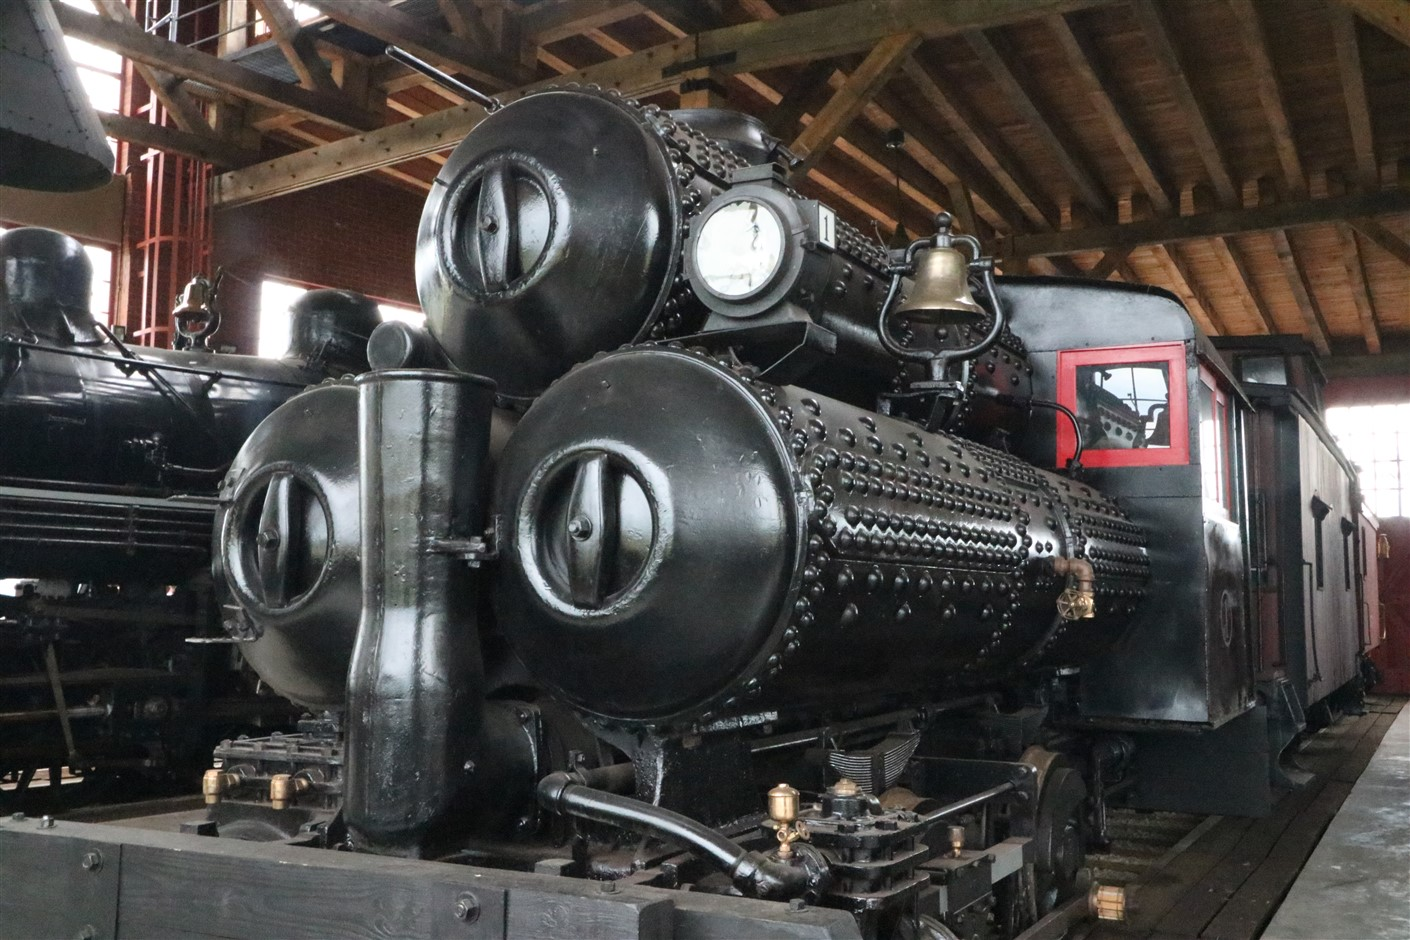 2018 06 09 99 Sugarcreek OH Age of Steam Roundhouse.jpg